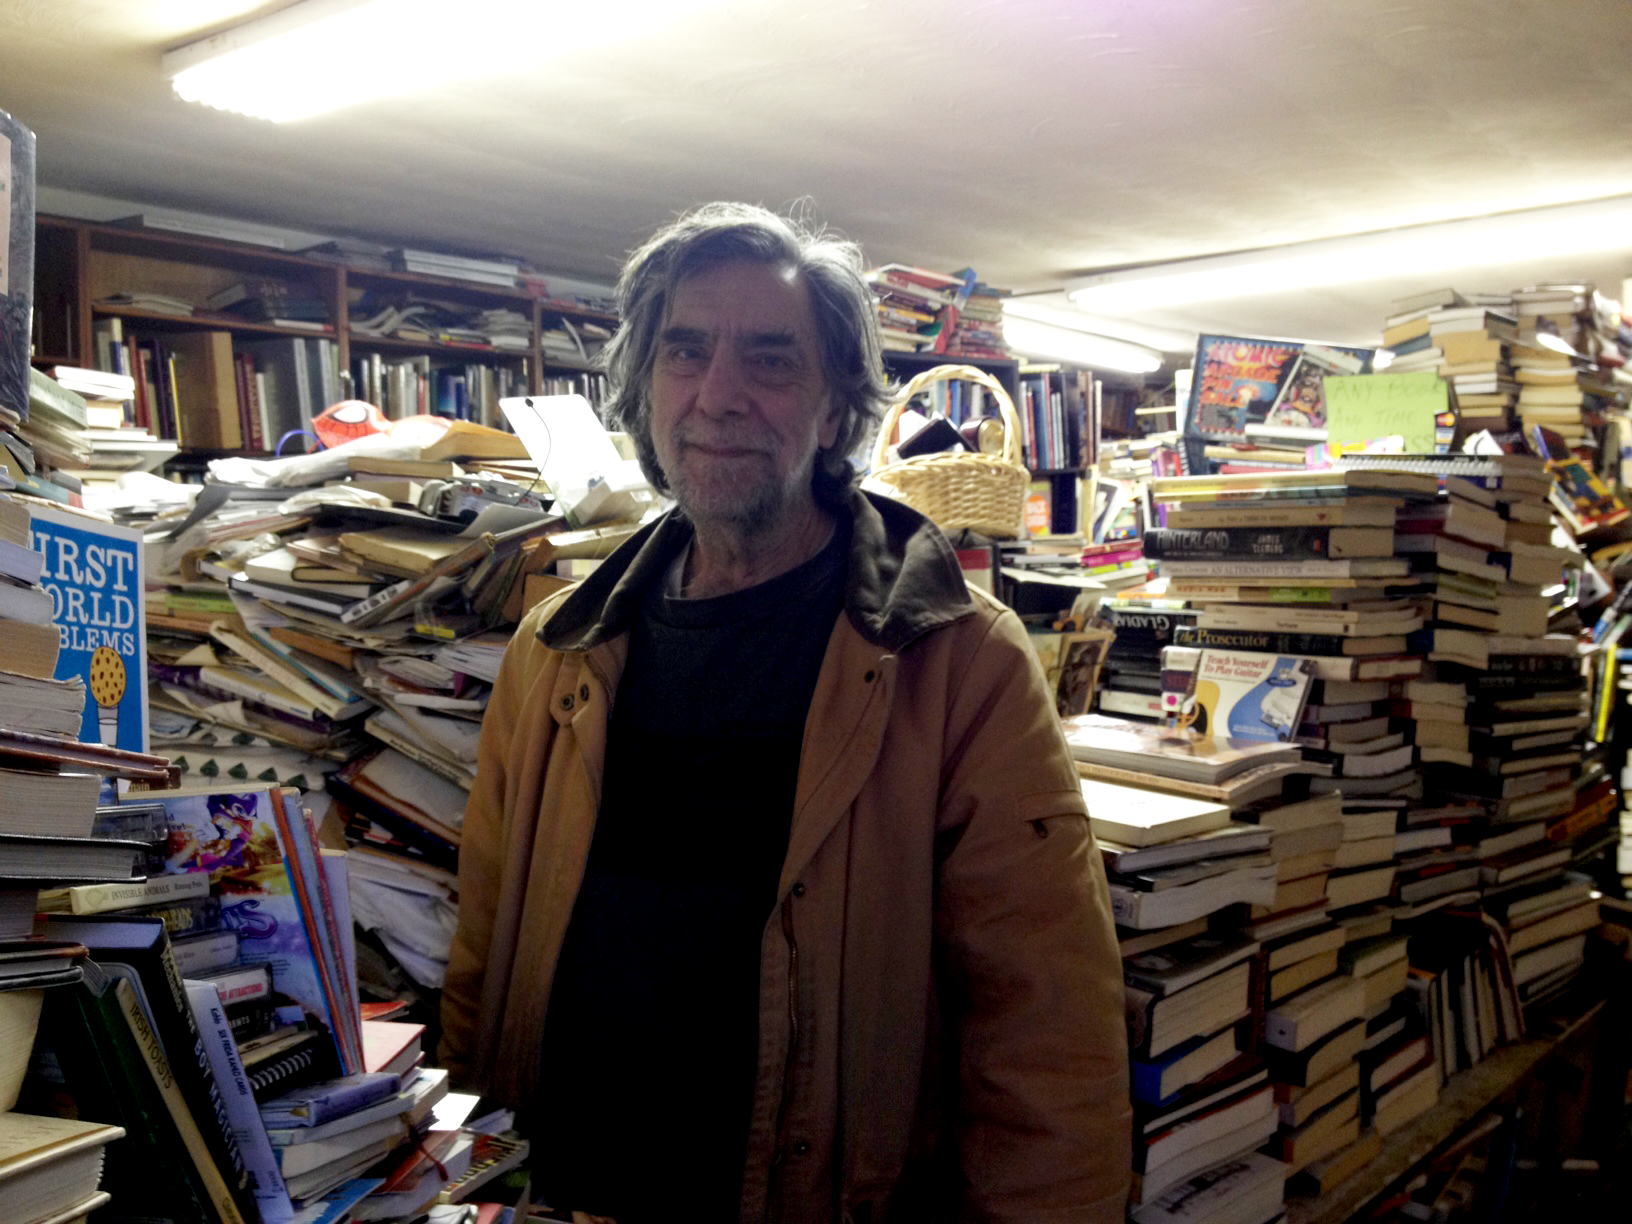 A conversation with a community bookseller